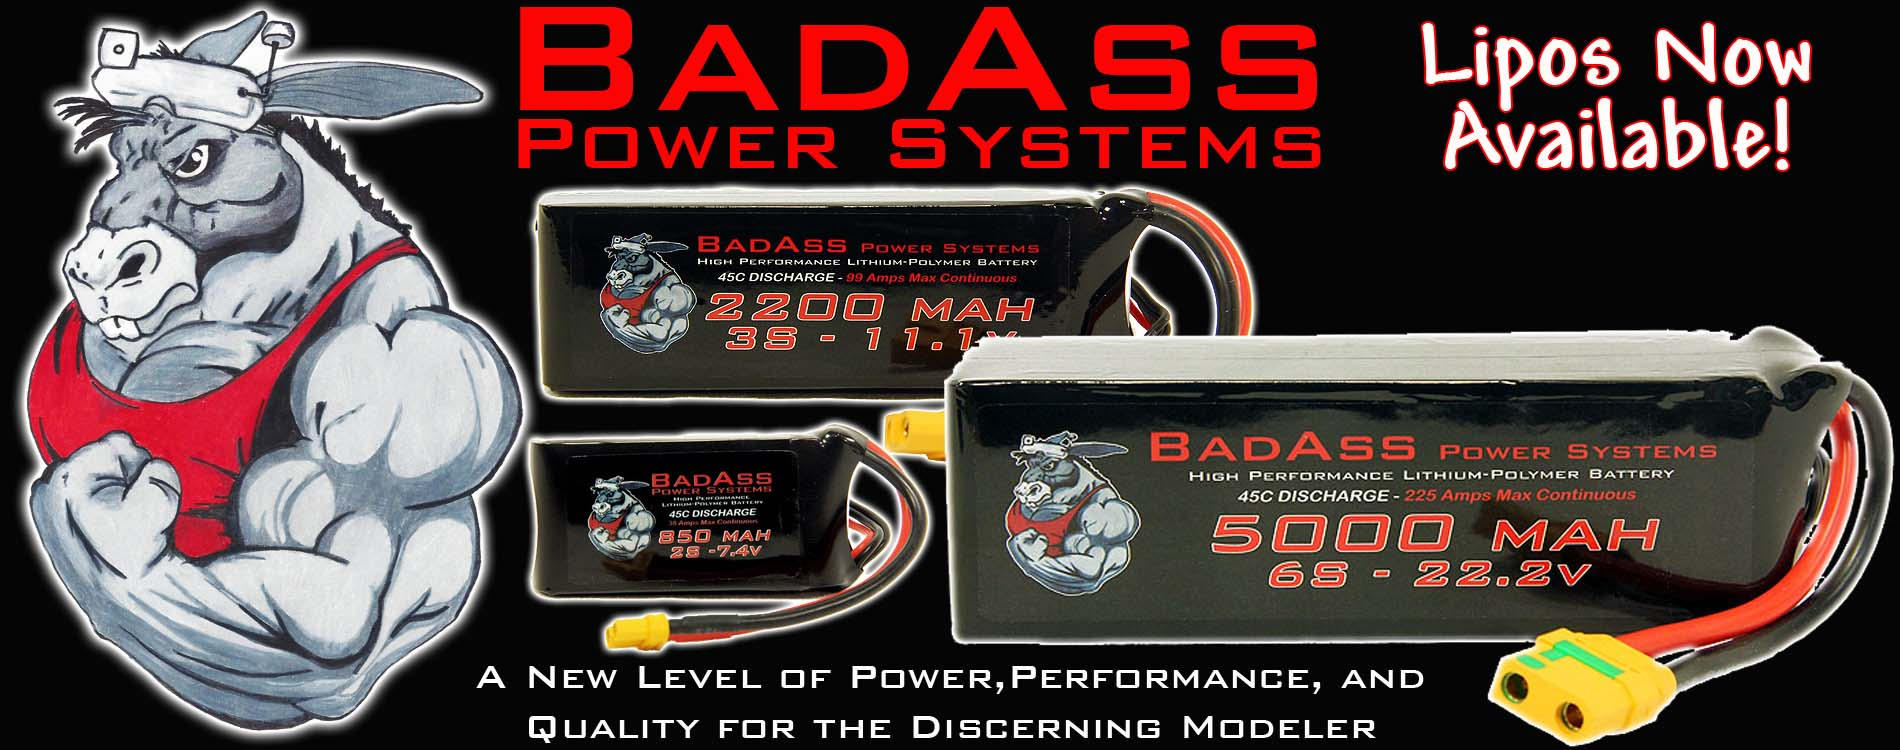 BadAss Lipo Batteries